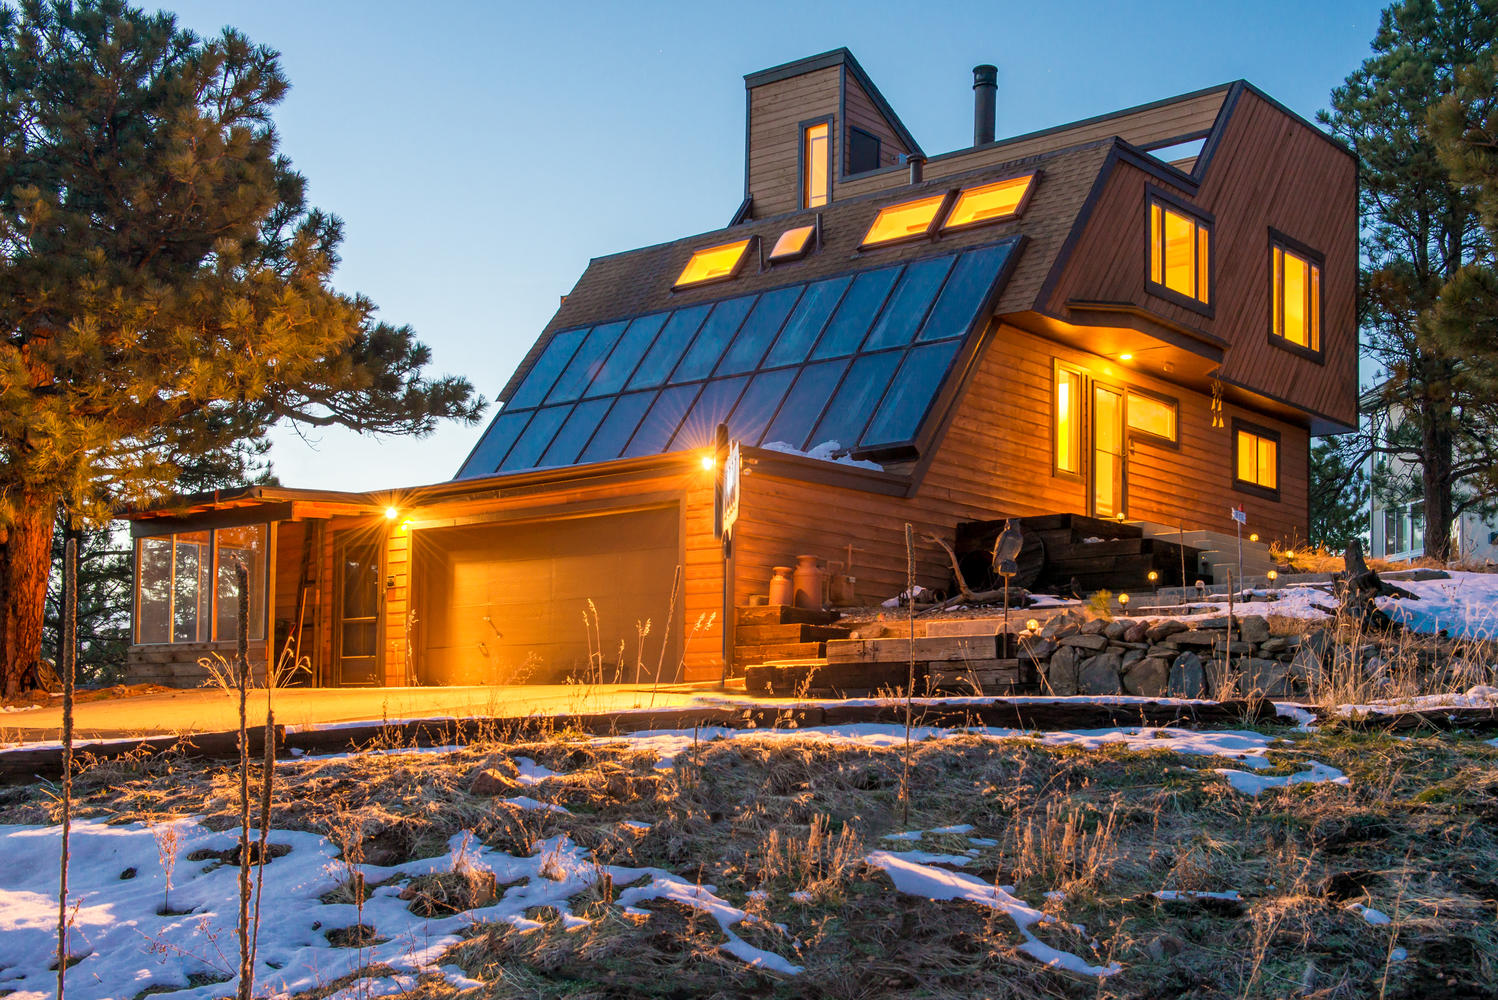 Single Family Home for Sale at Sparkling City Lights and Pikes Peak Views 1579 South Lininger Drive Golden, Colorado, 80401 United States